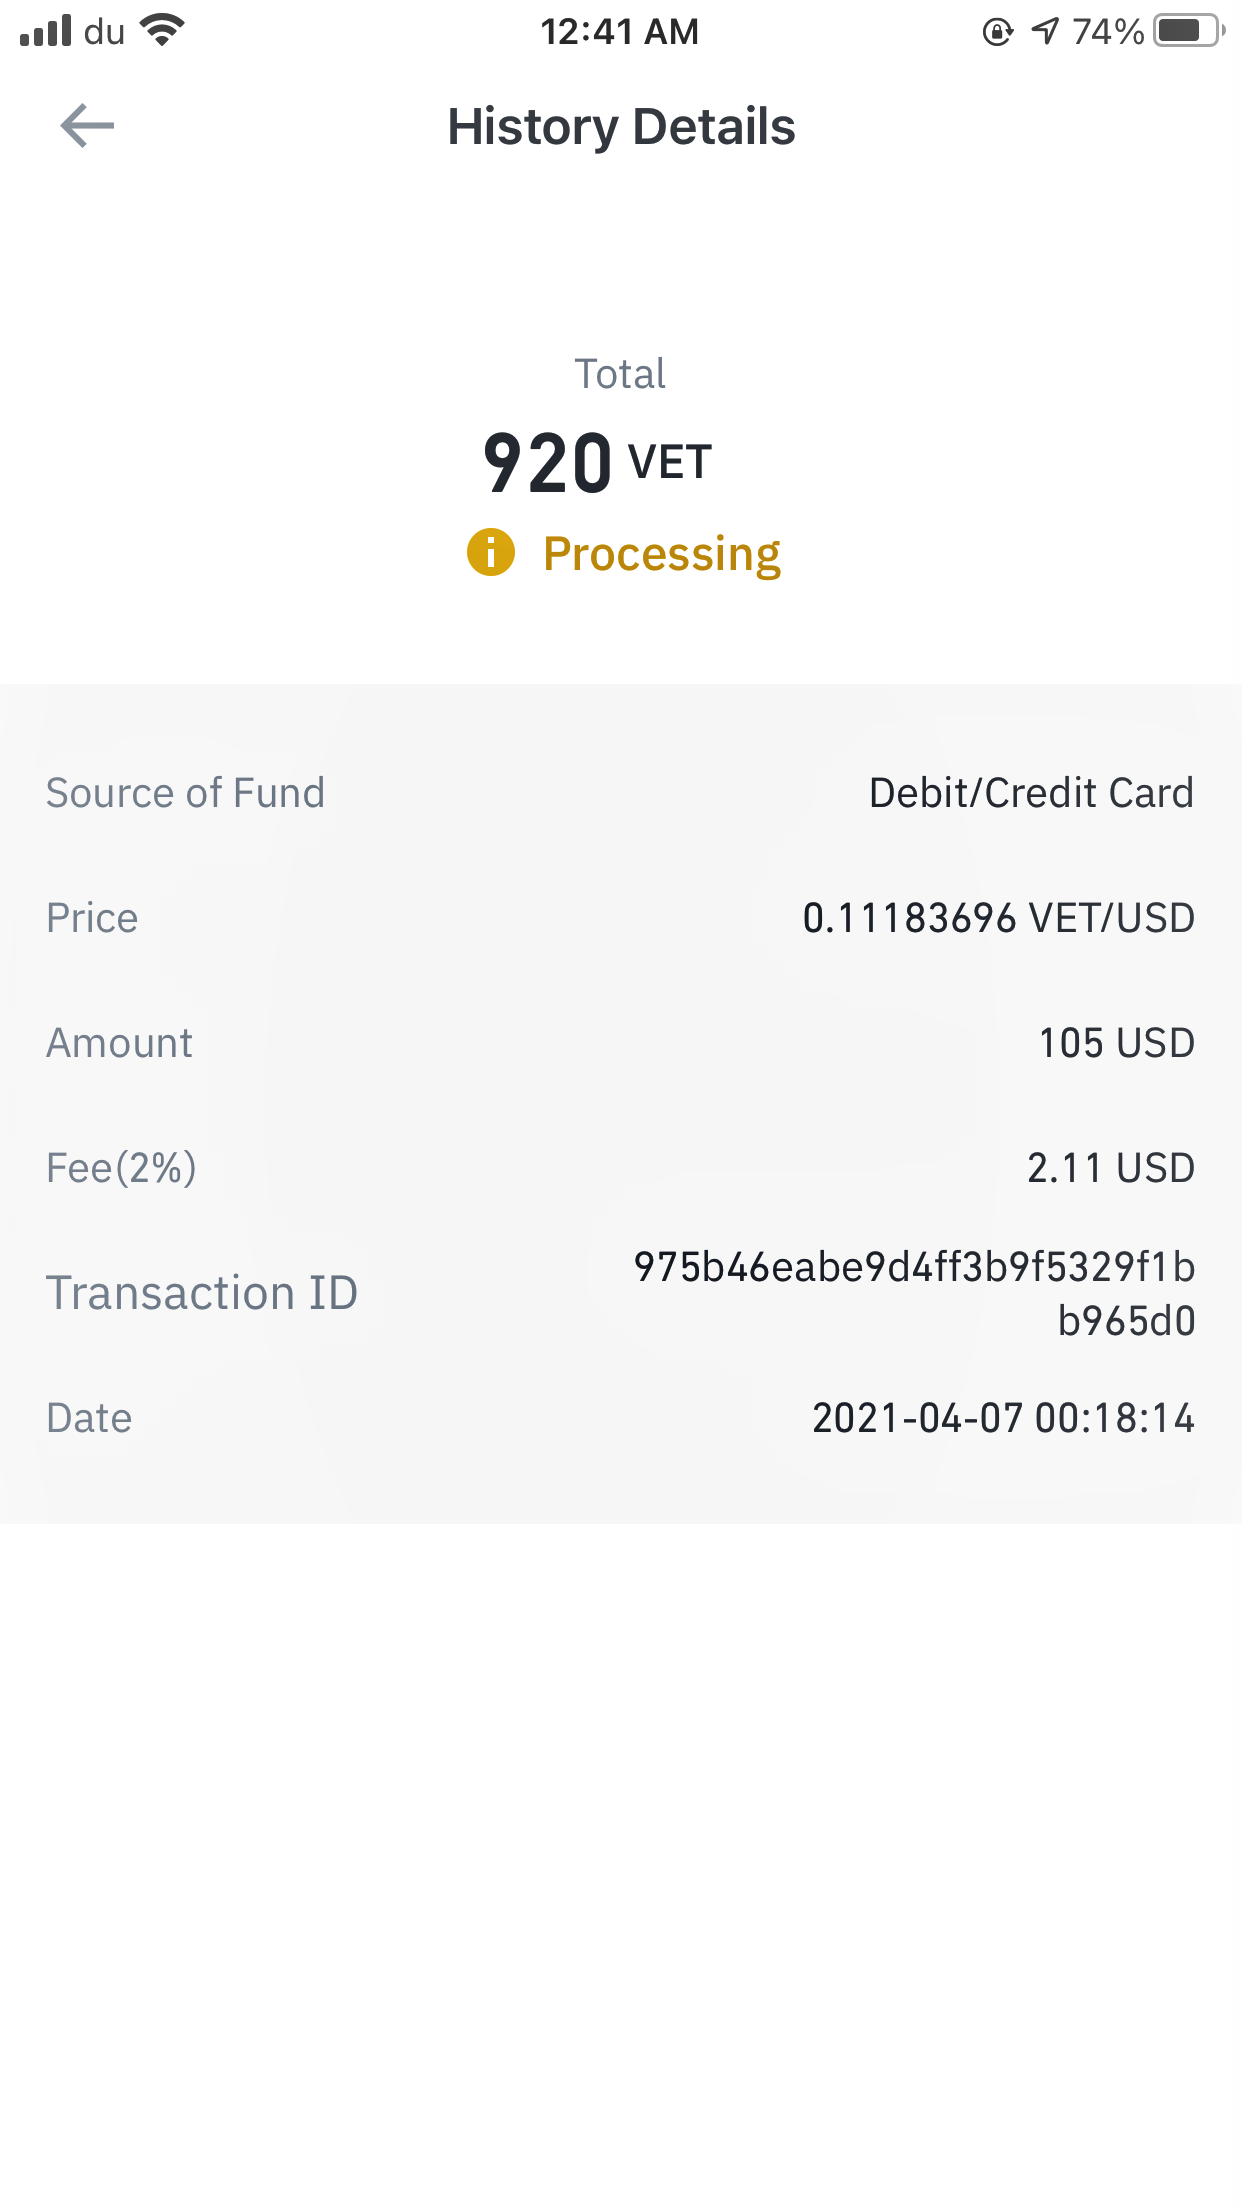 Transaction done on 7th April 2021 still shows processing